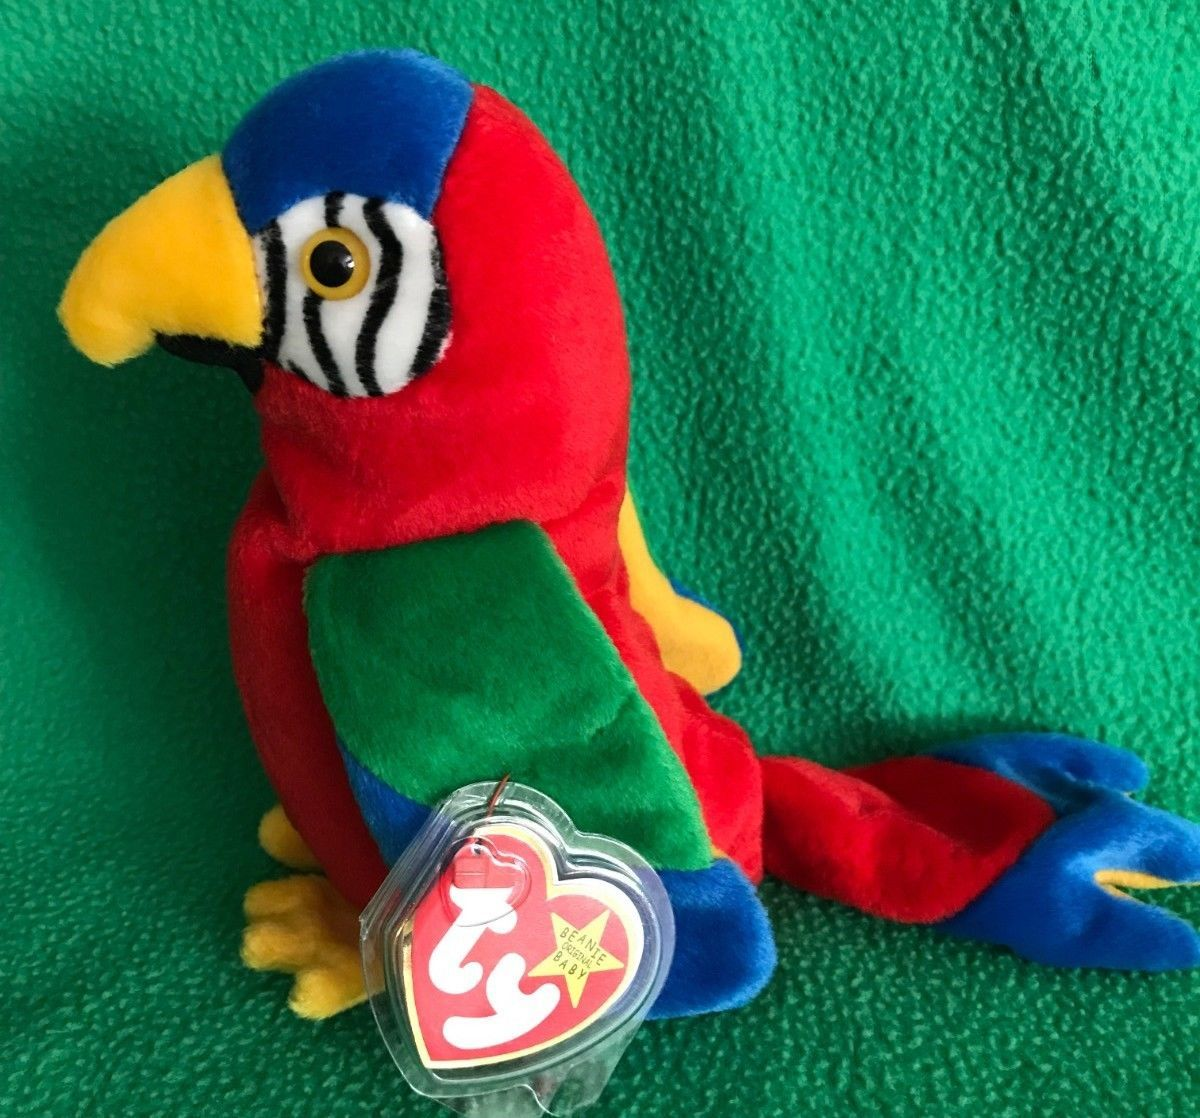 14f5e10ae52 TY Beanie Baby JABBER the Parrot 1997 5.5 MWMT Vintage Stuffed Animal Toy